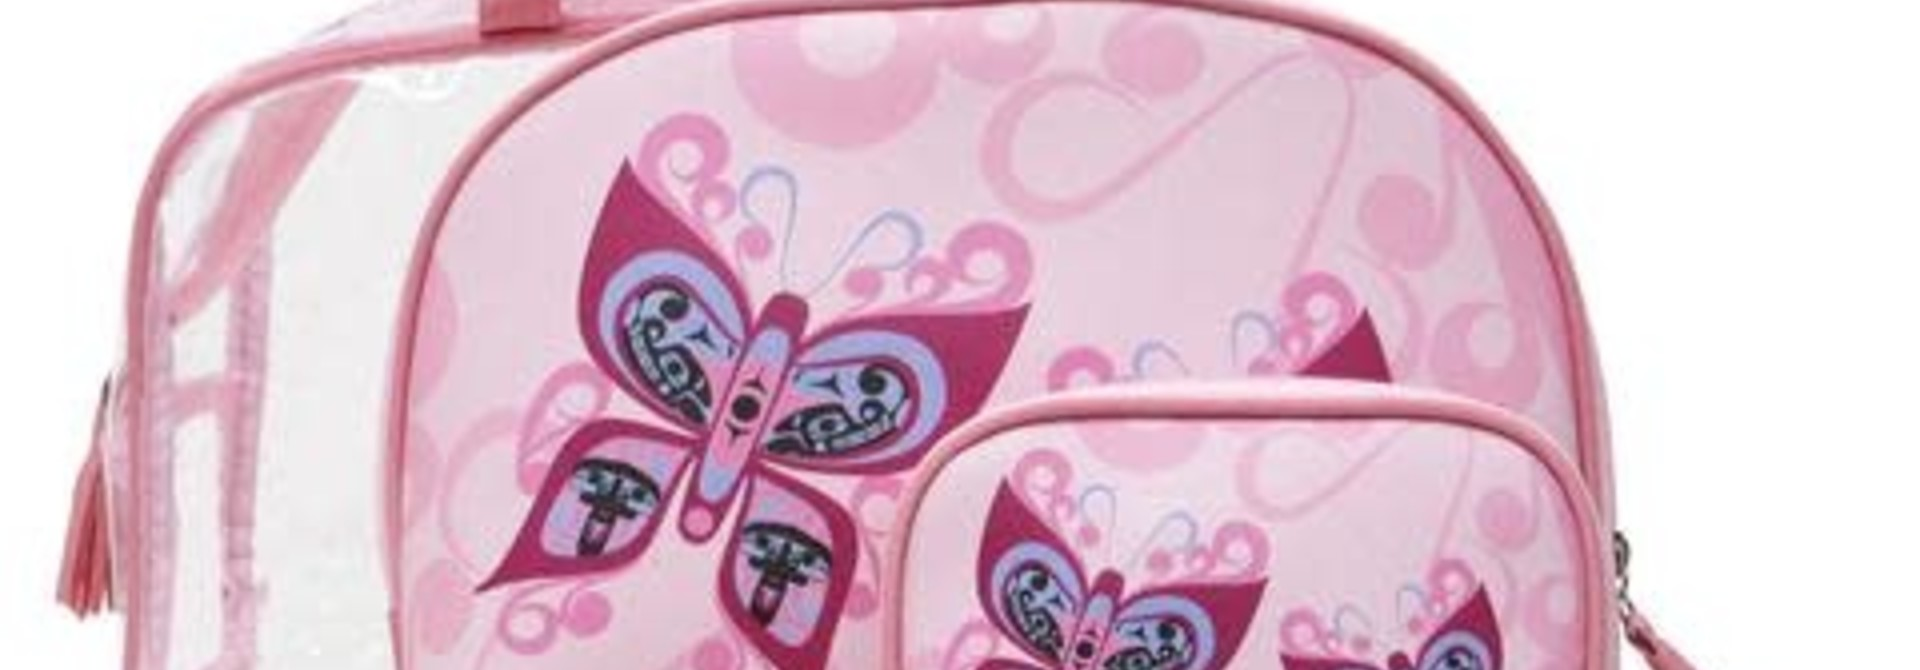 Cosmetic Bag Set-Celebration of Life by Francis Dick